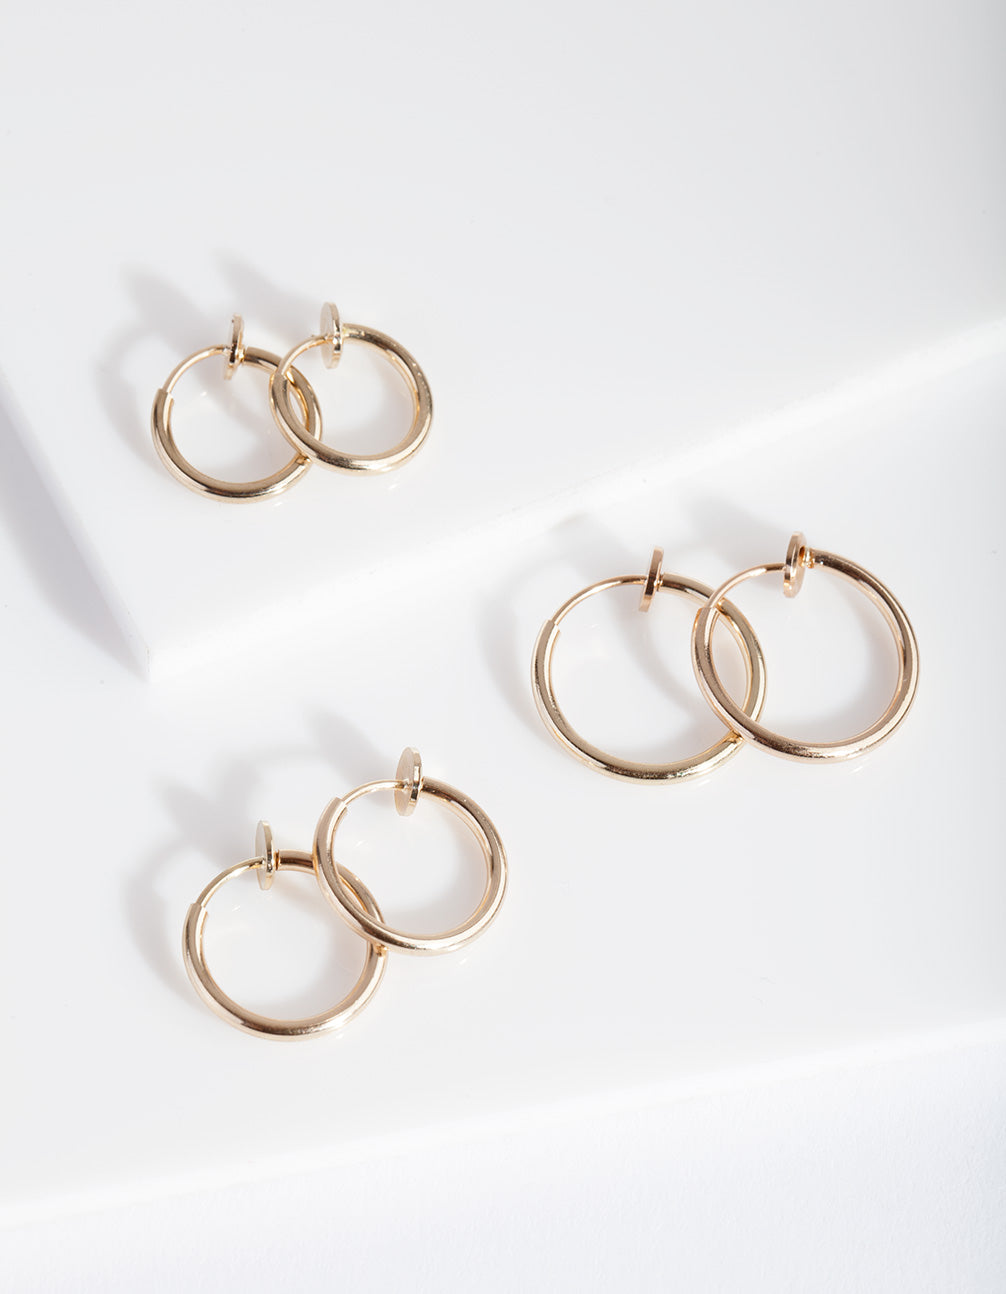 Gold Faux Body Rings 7 Pack